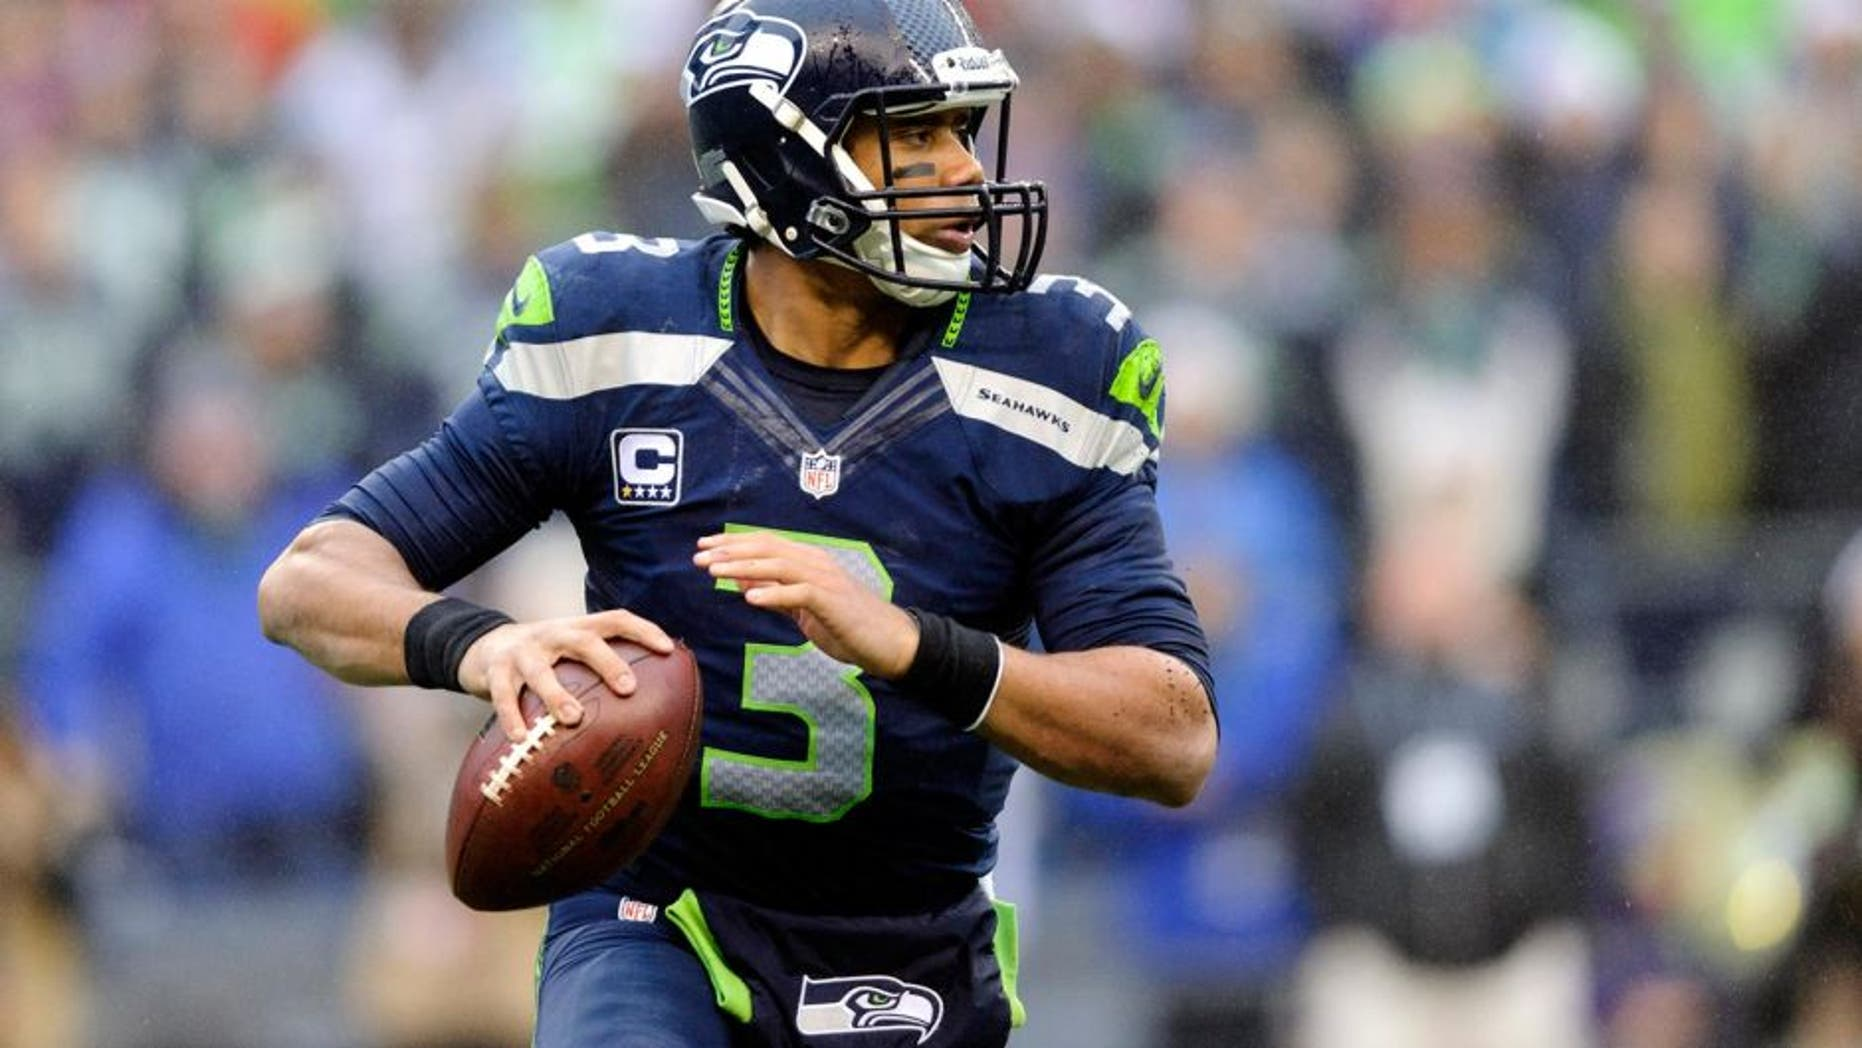 Dec 22, 2013; Seattle, WA, USA; Seattle Seahawks quarterback Russell Wilson (3) looks looks for an open receiver during the first half against the Arizona Cardinals at CenturyLink Field. Mandatory Credit: Steven Bisig-USA TODAY Sports